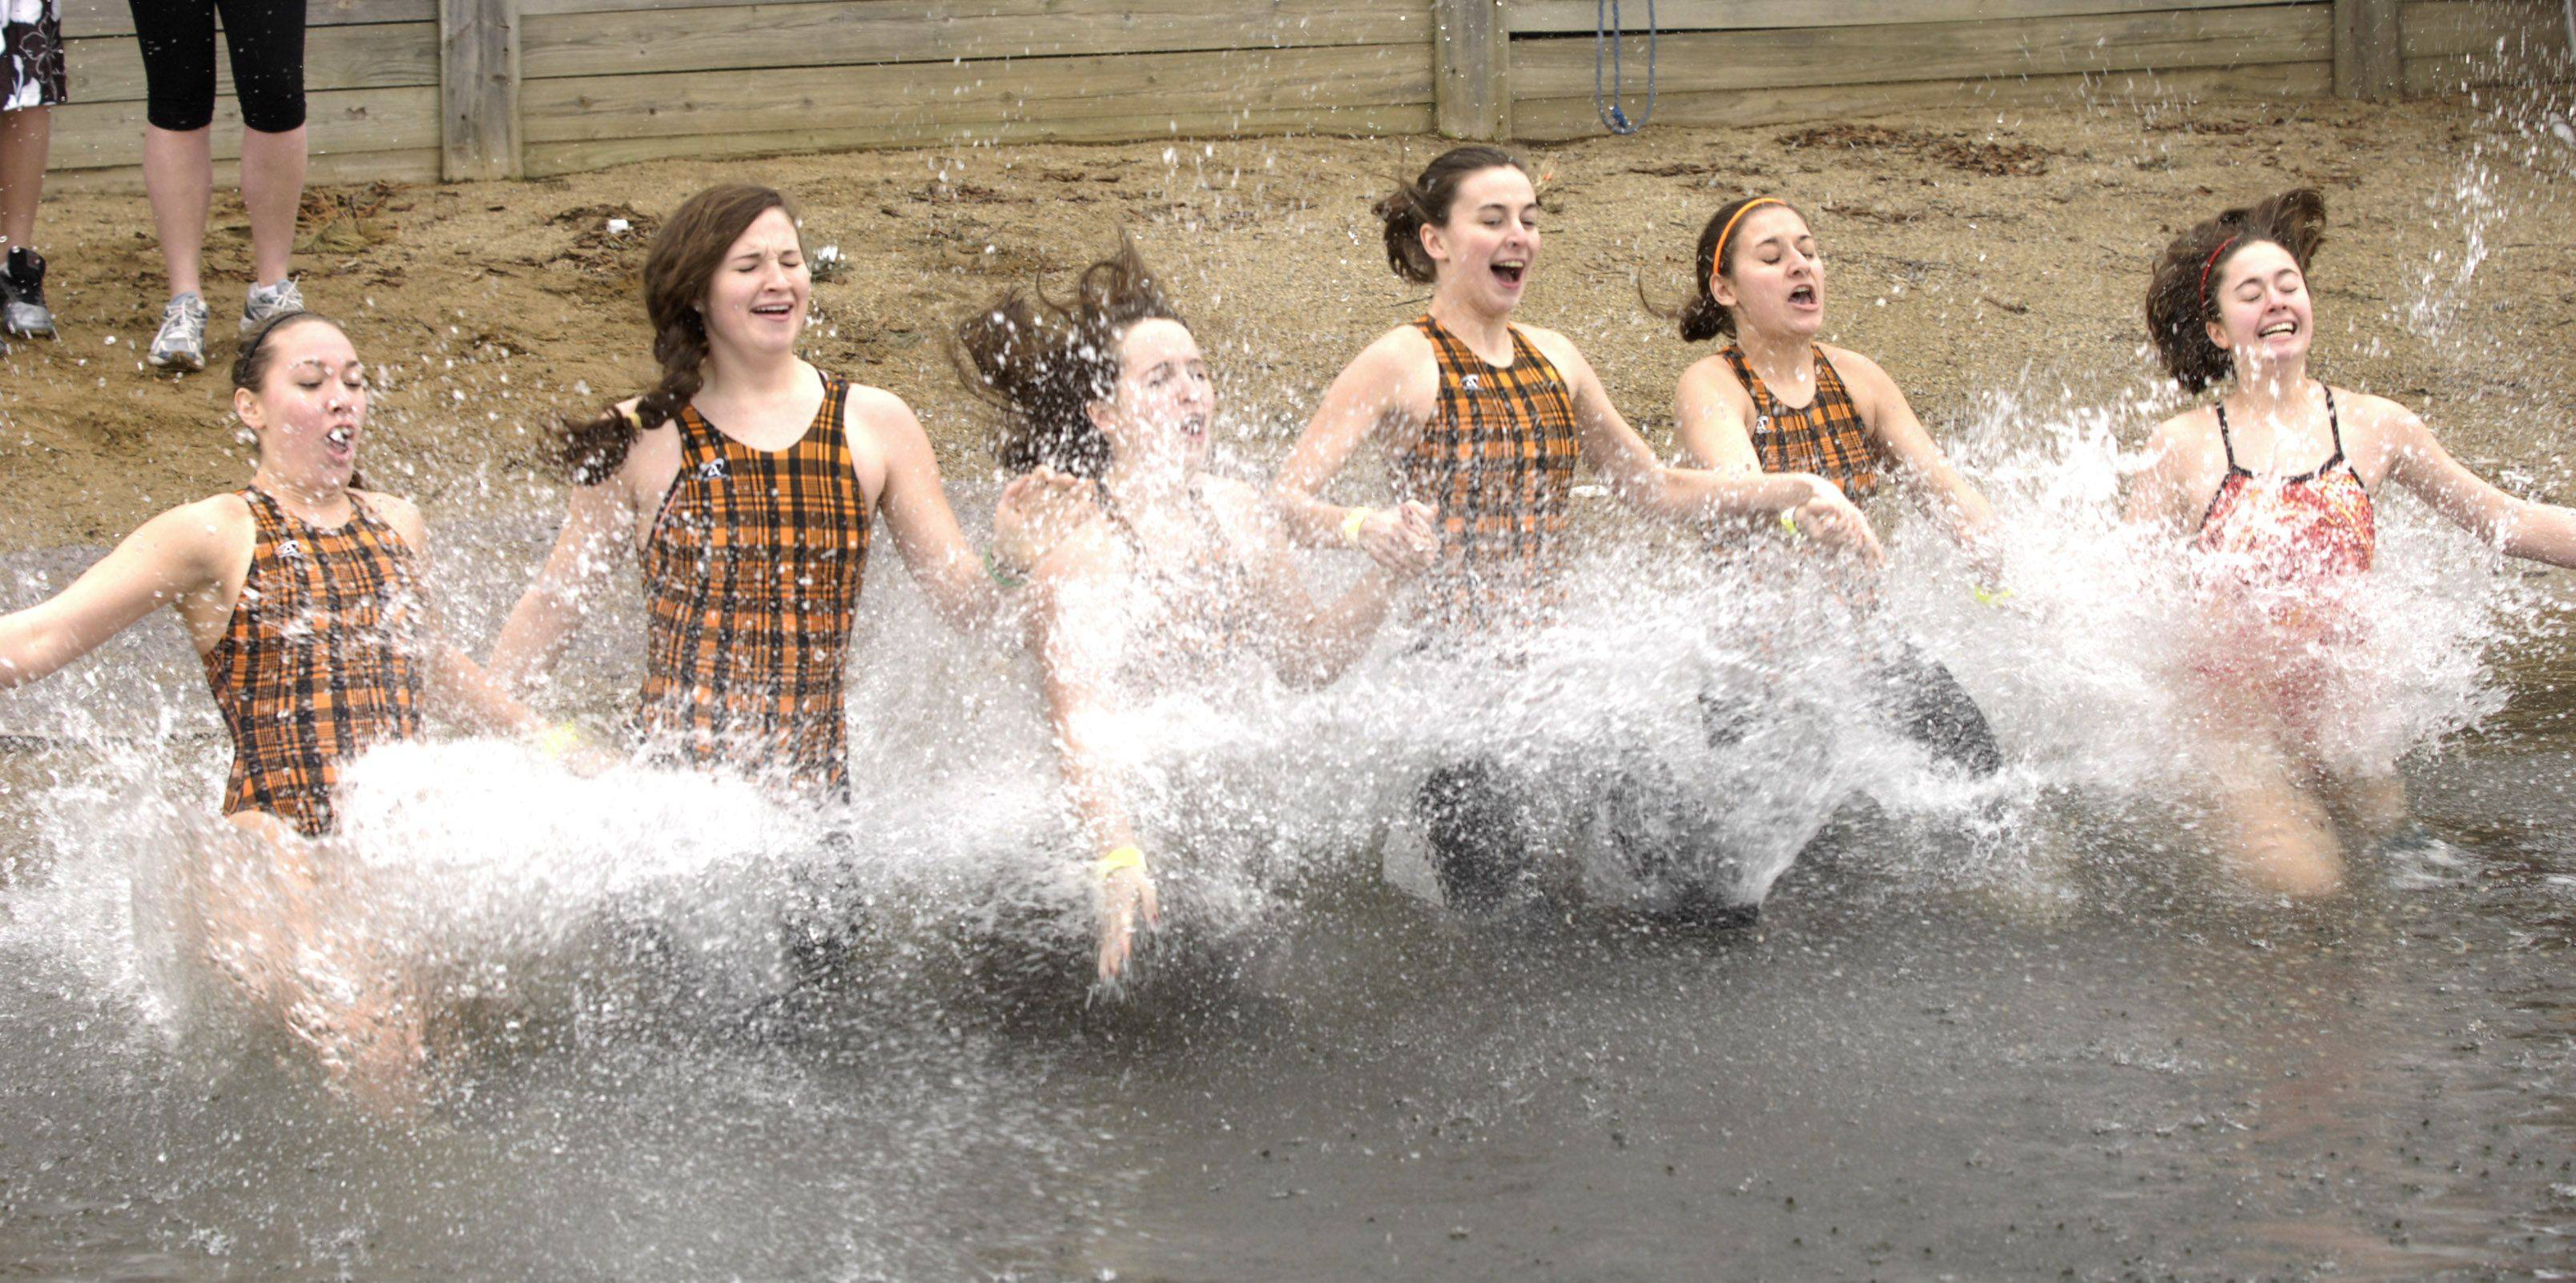 Members of the Hersey High School water polo team participate in the 2011 Special Olympics Law Enforcement Torch Run Polar Plunge at Twin Lakes recreation area in Palatine.